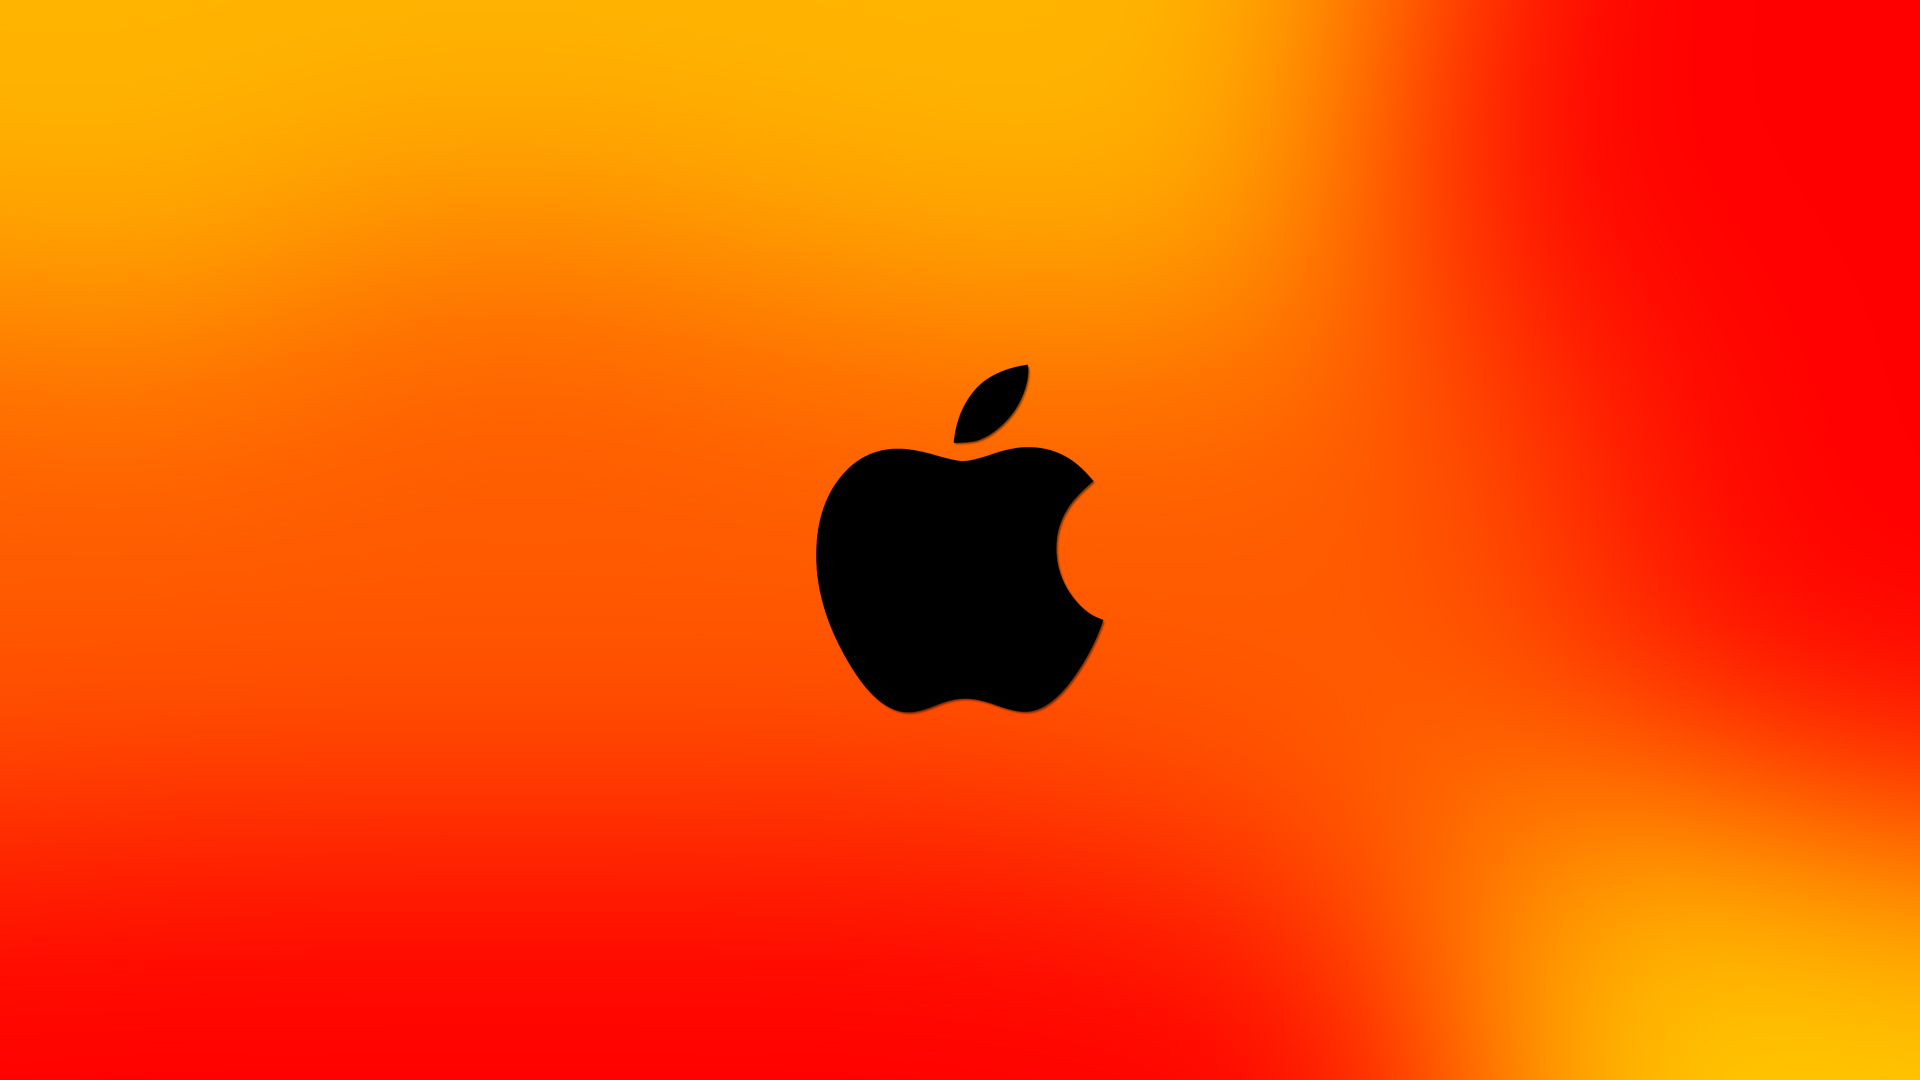 wallpapers apple wallpaper 4k widescreen